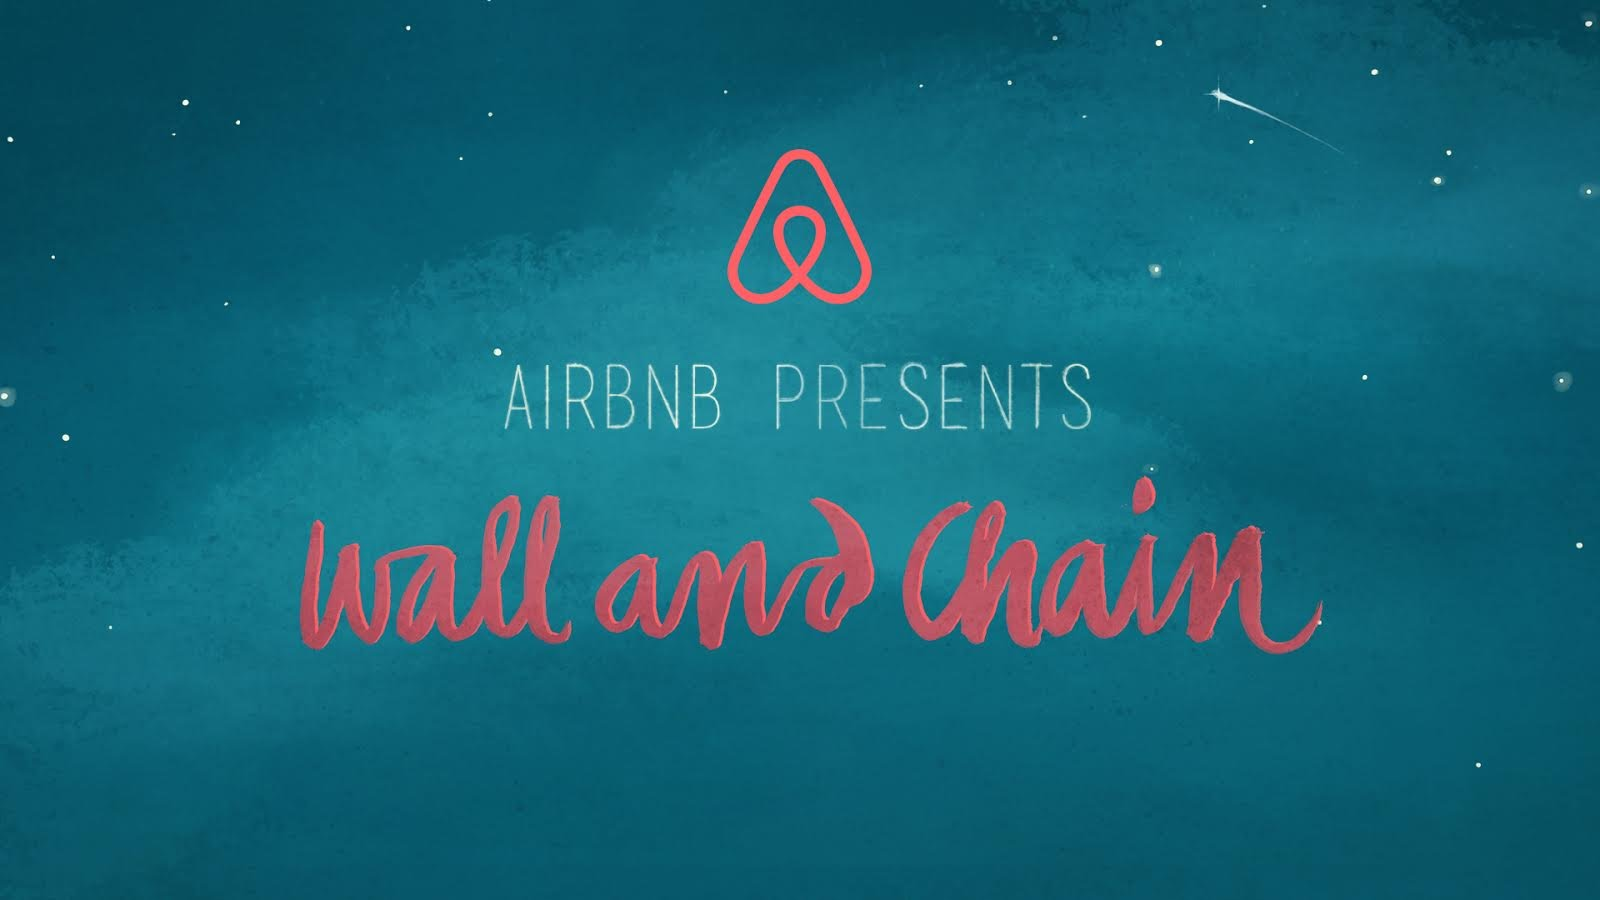 「Airbnb 城市故事:父親與倒塌的柏林圍牆」- Wall and Chain: A Story of Breaking Down Walls